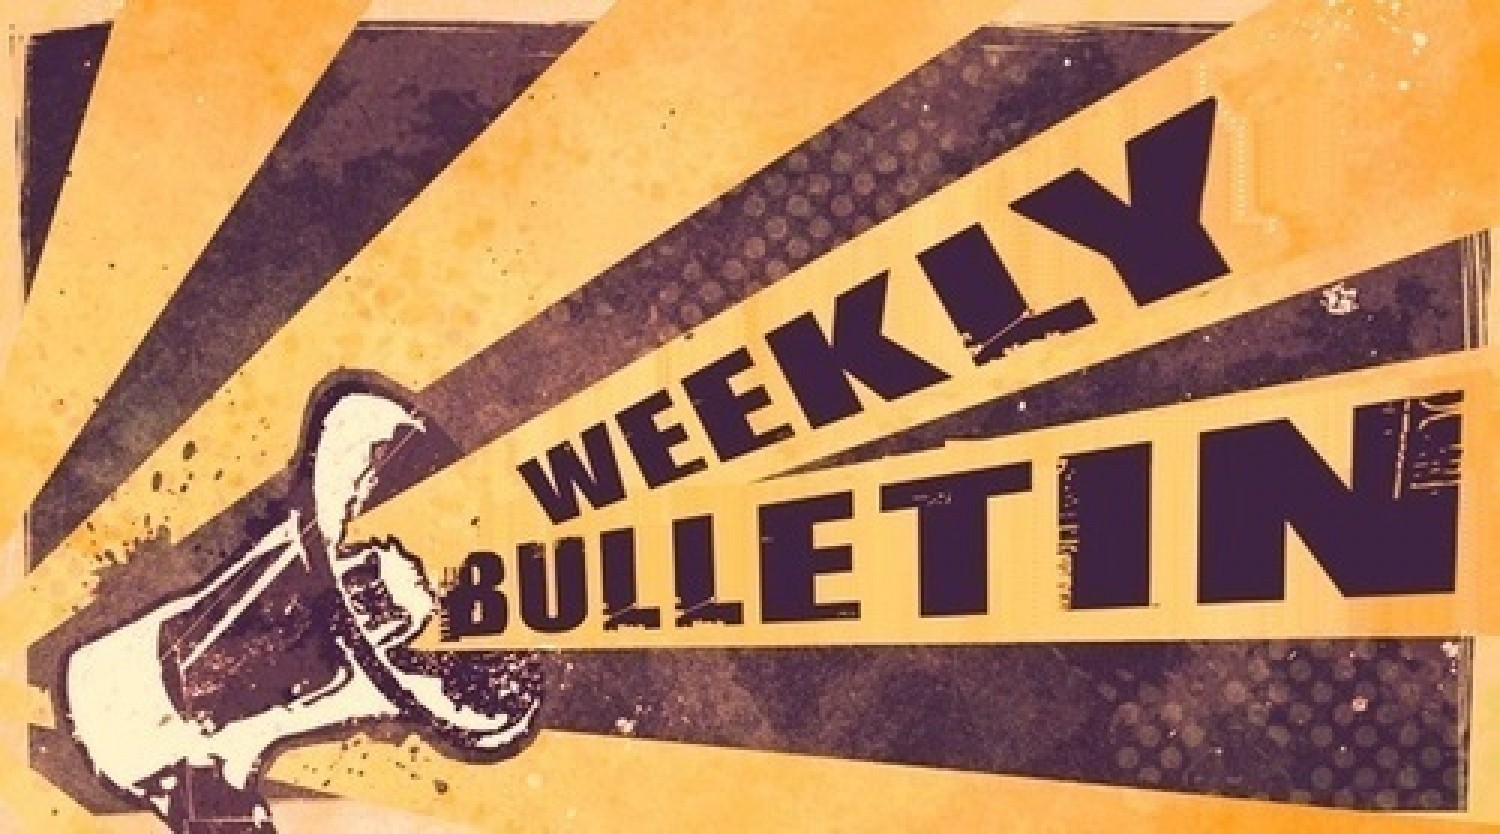 Weekly Bulletin April 26th